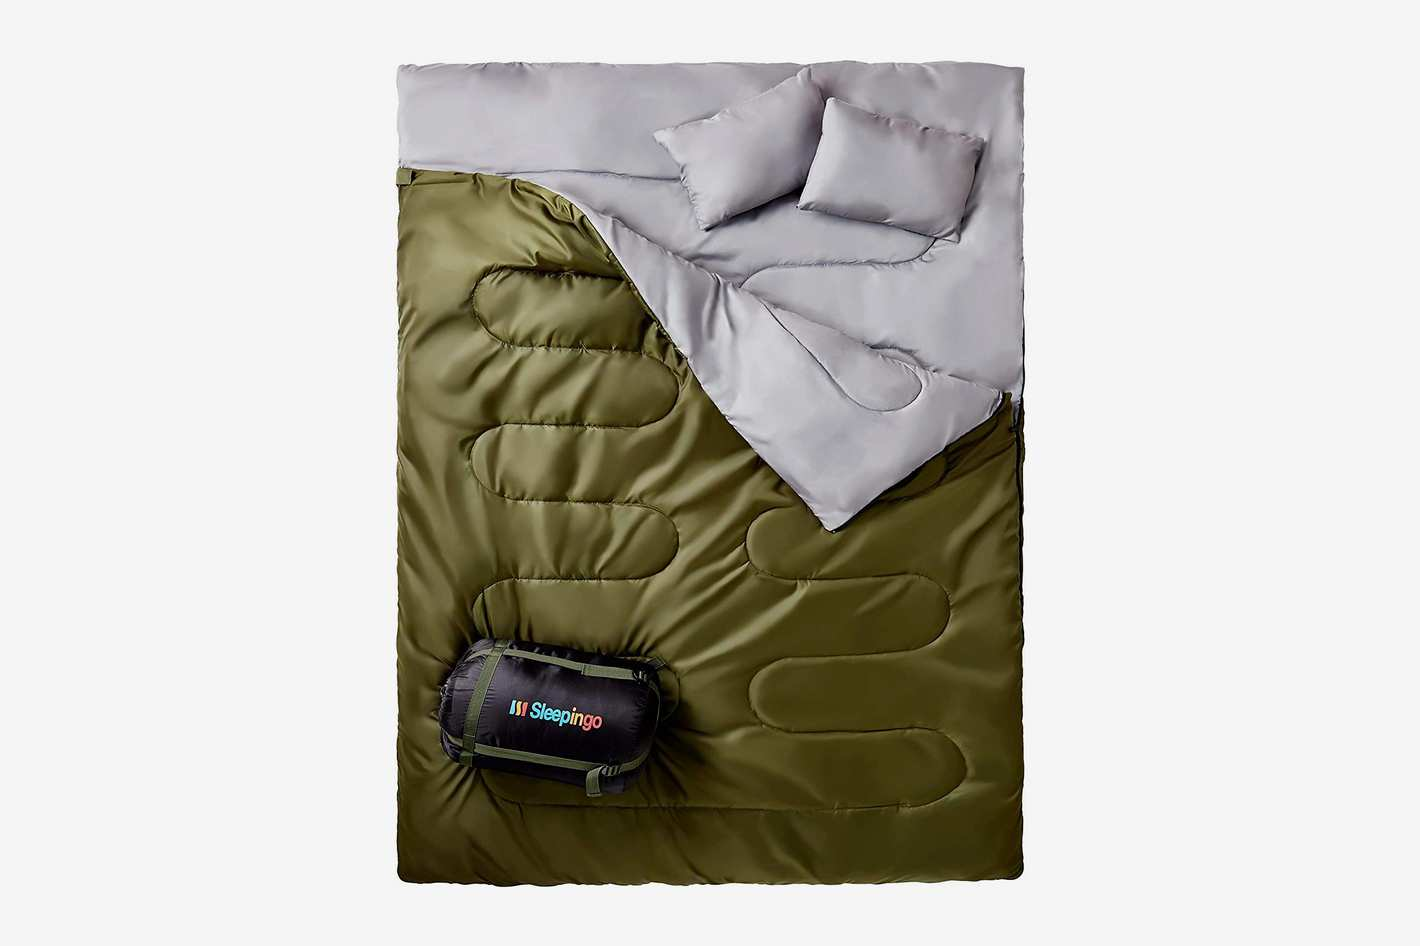 Sleepingo Double Sleeping Bag